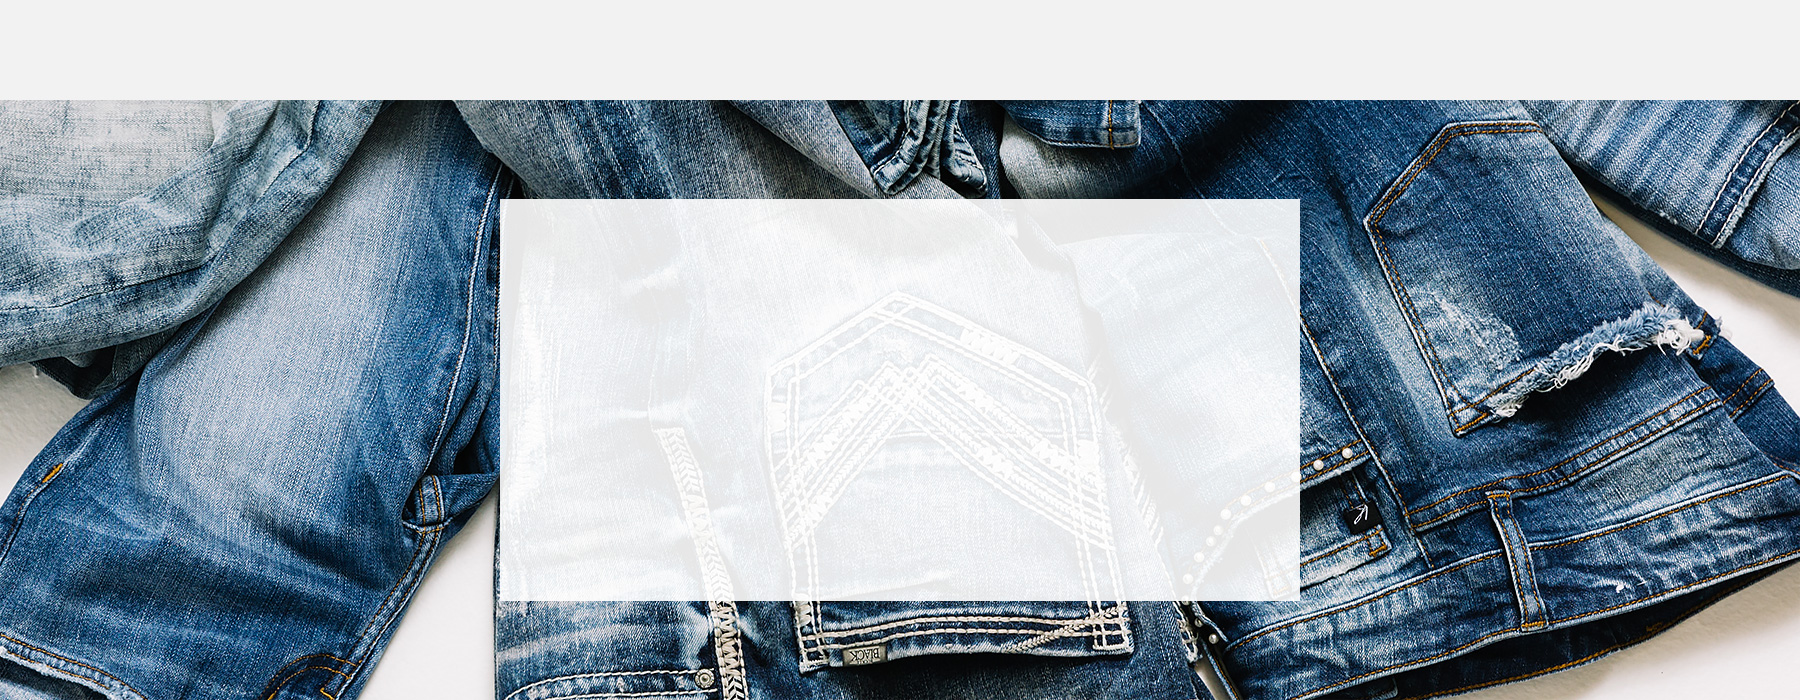 Men's and women's jeans spread out on white background.